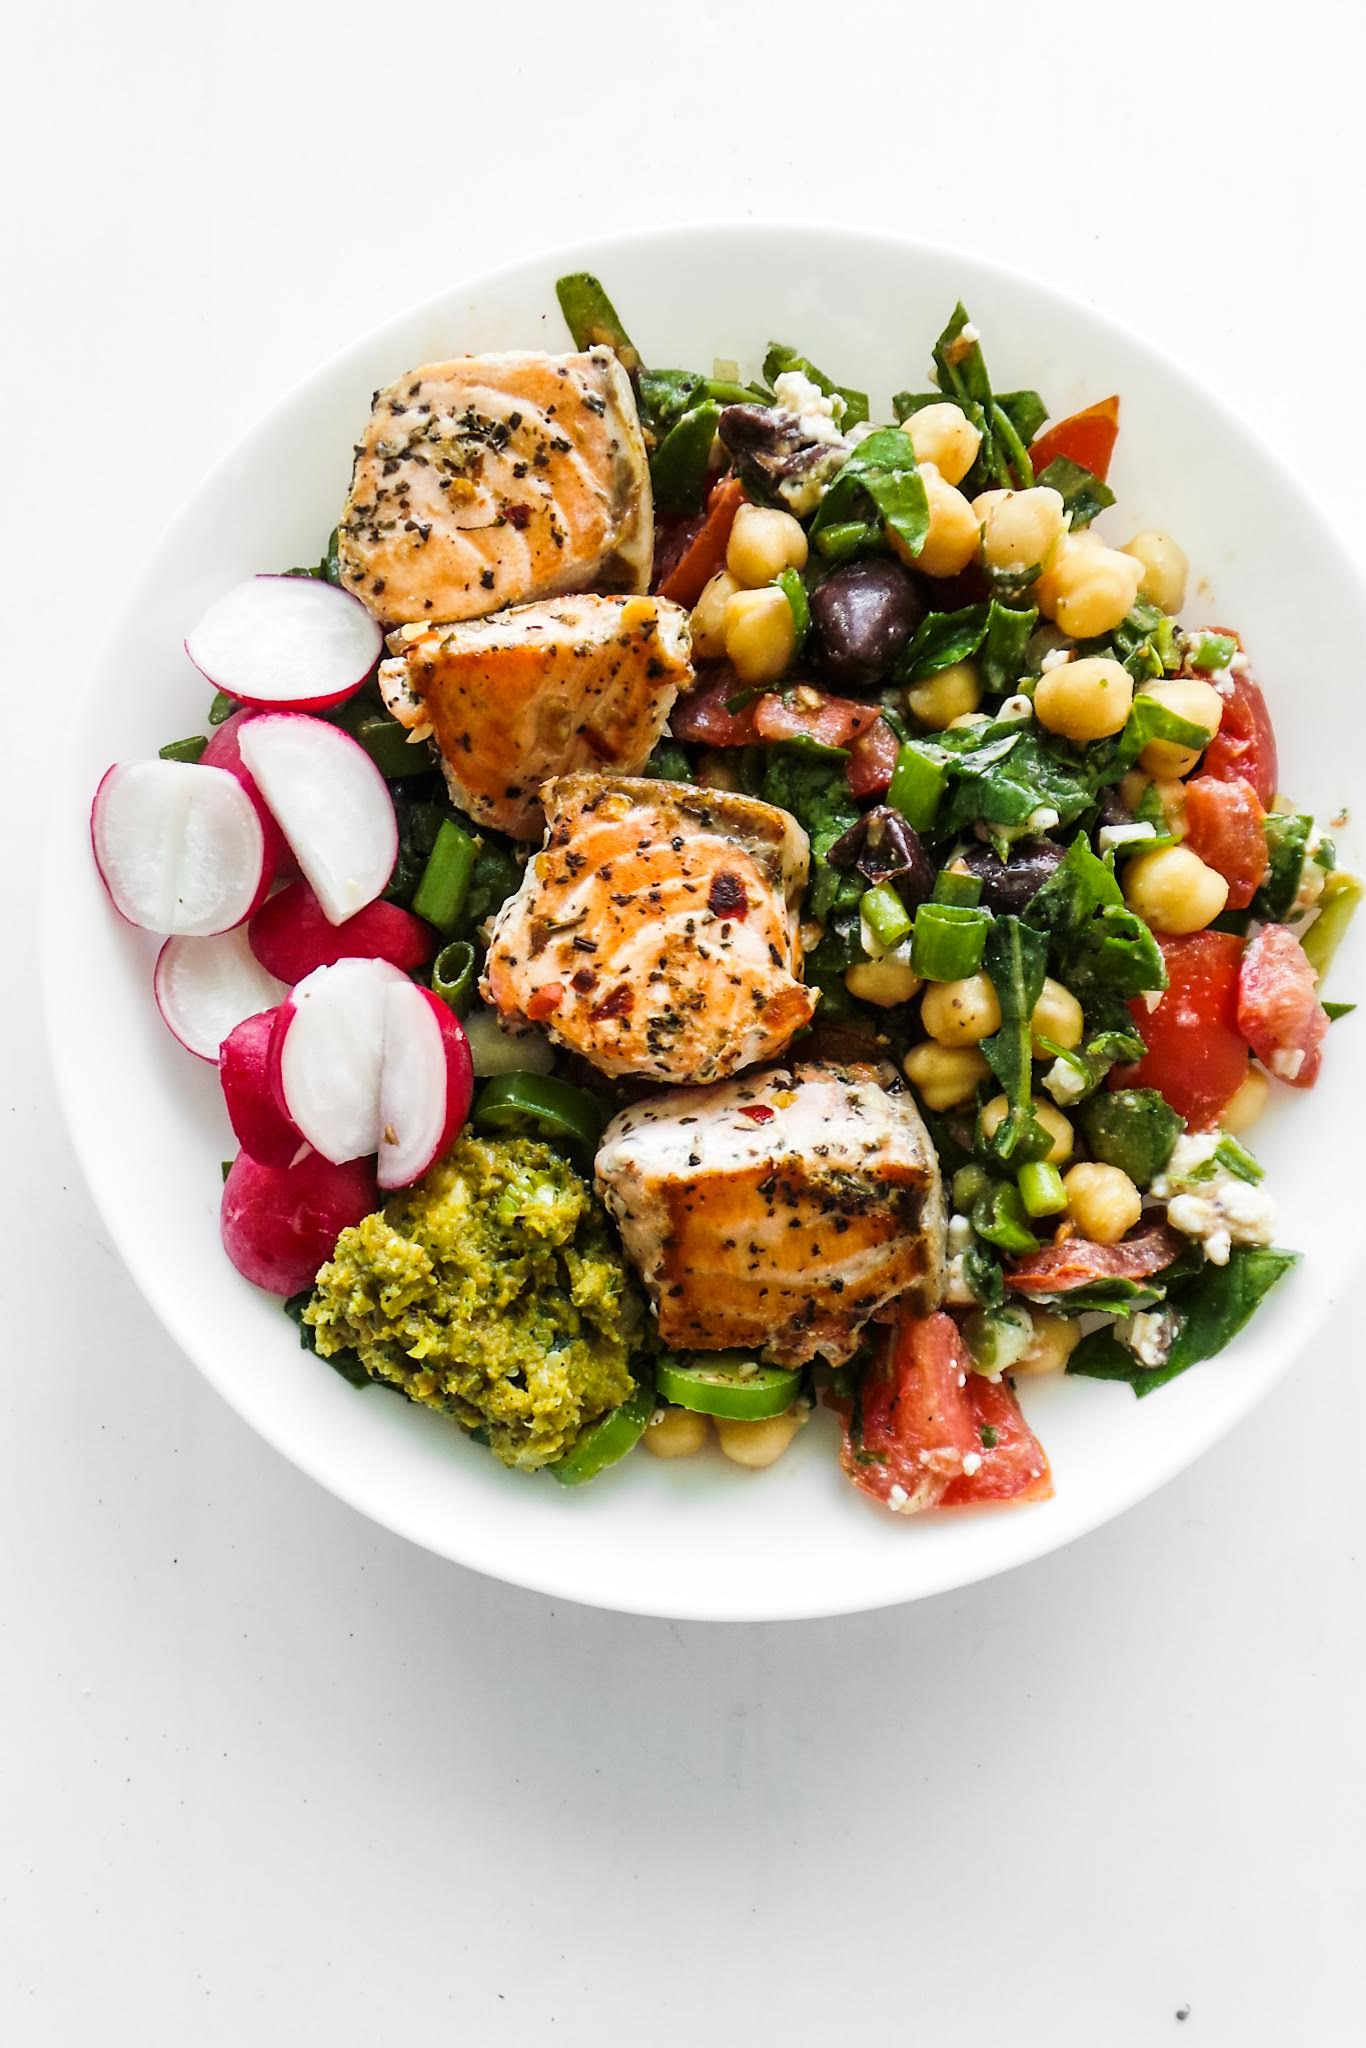 salmon bowls with chickpea salad - gluten free dairy-free dinner recipe